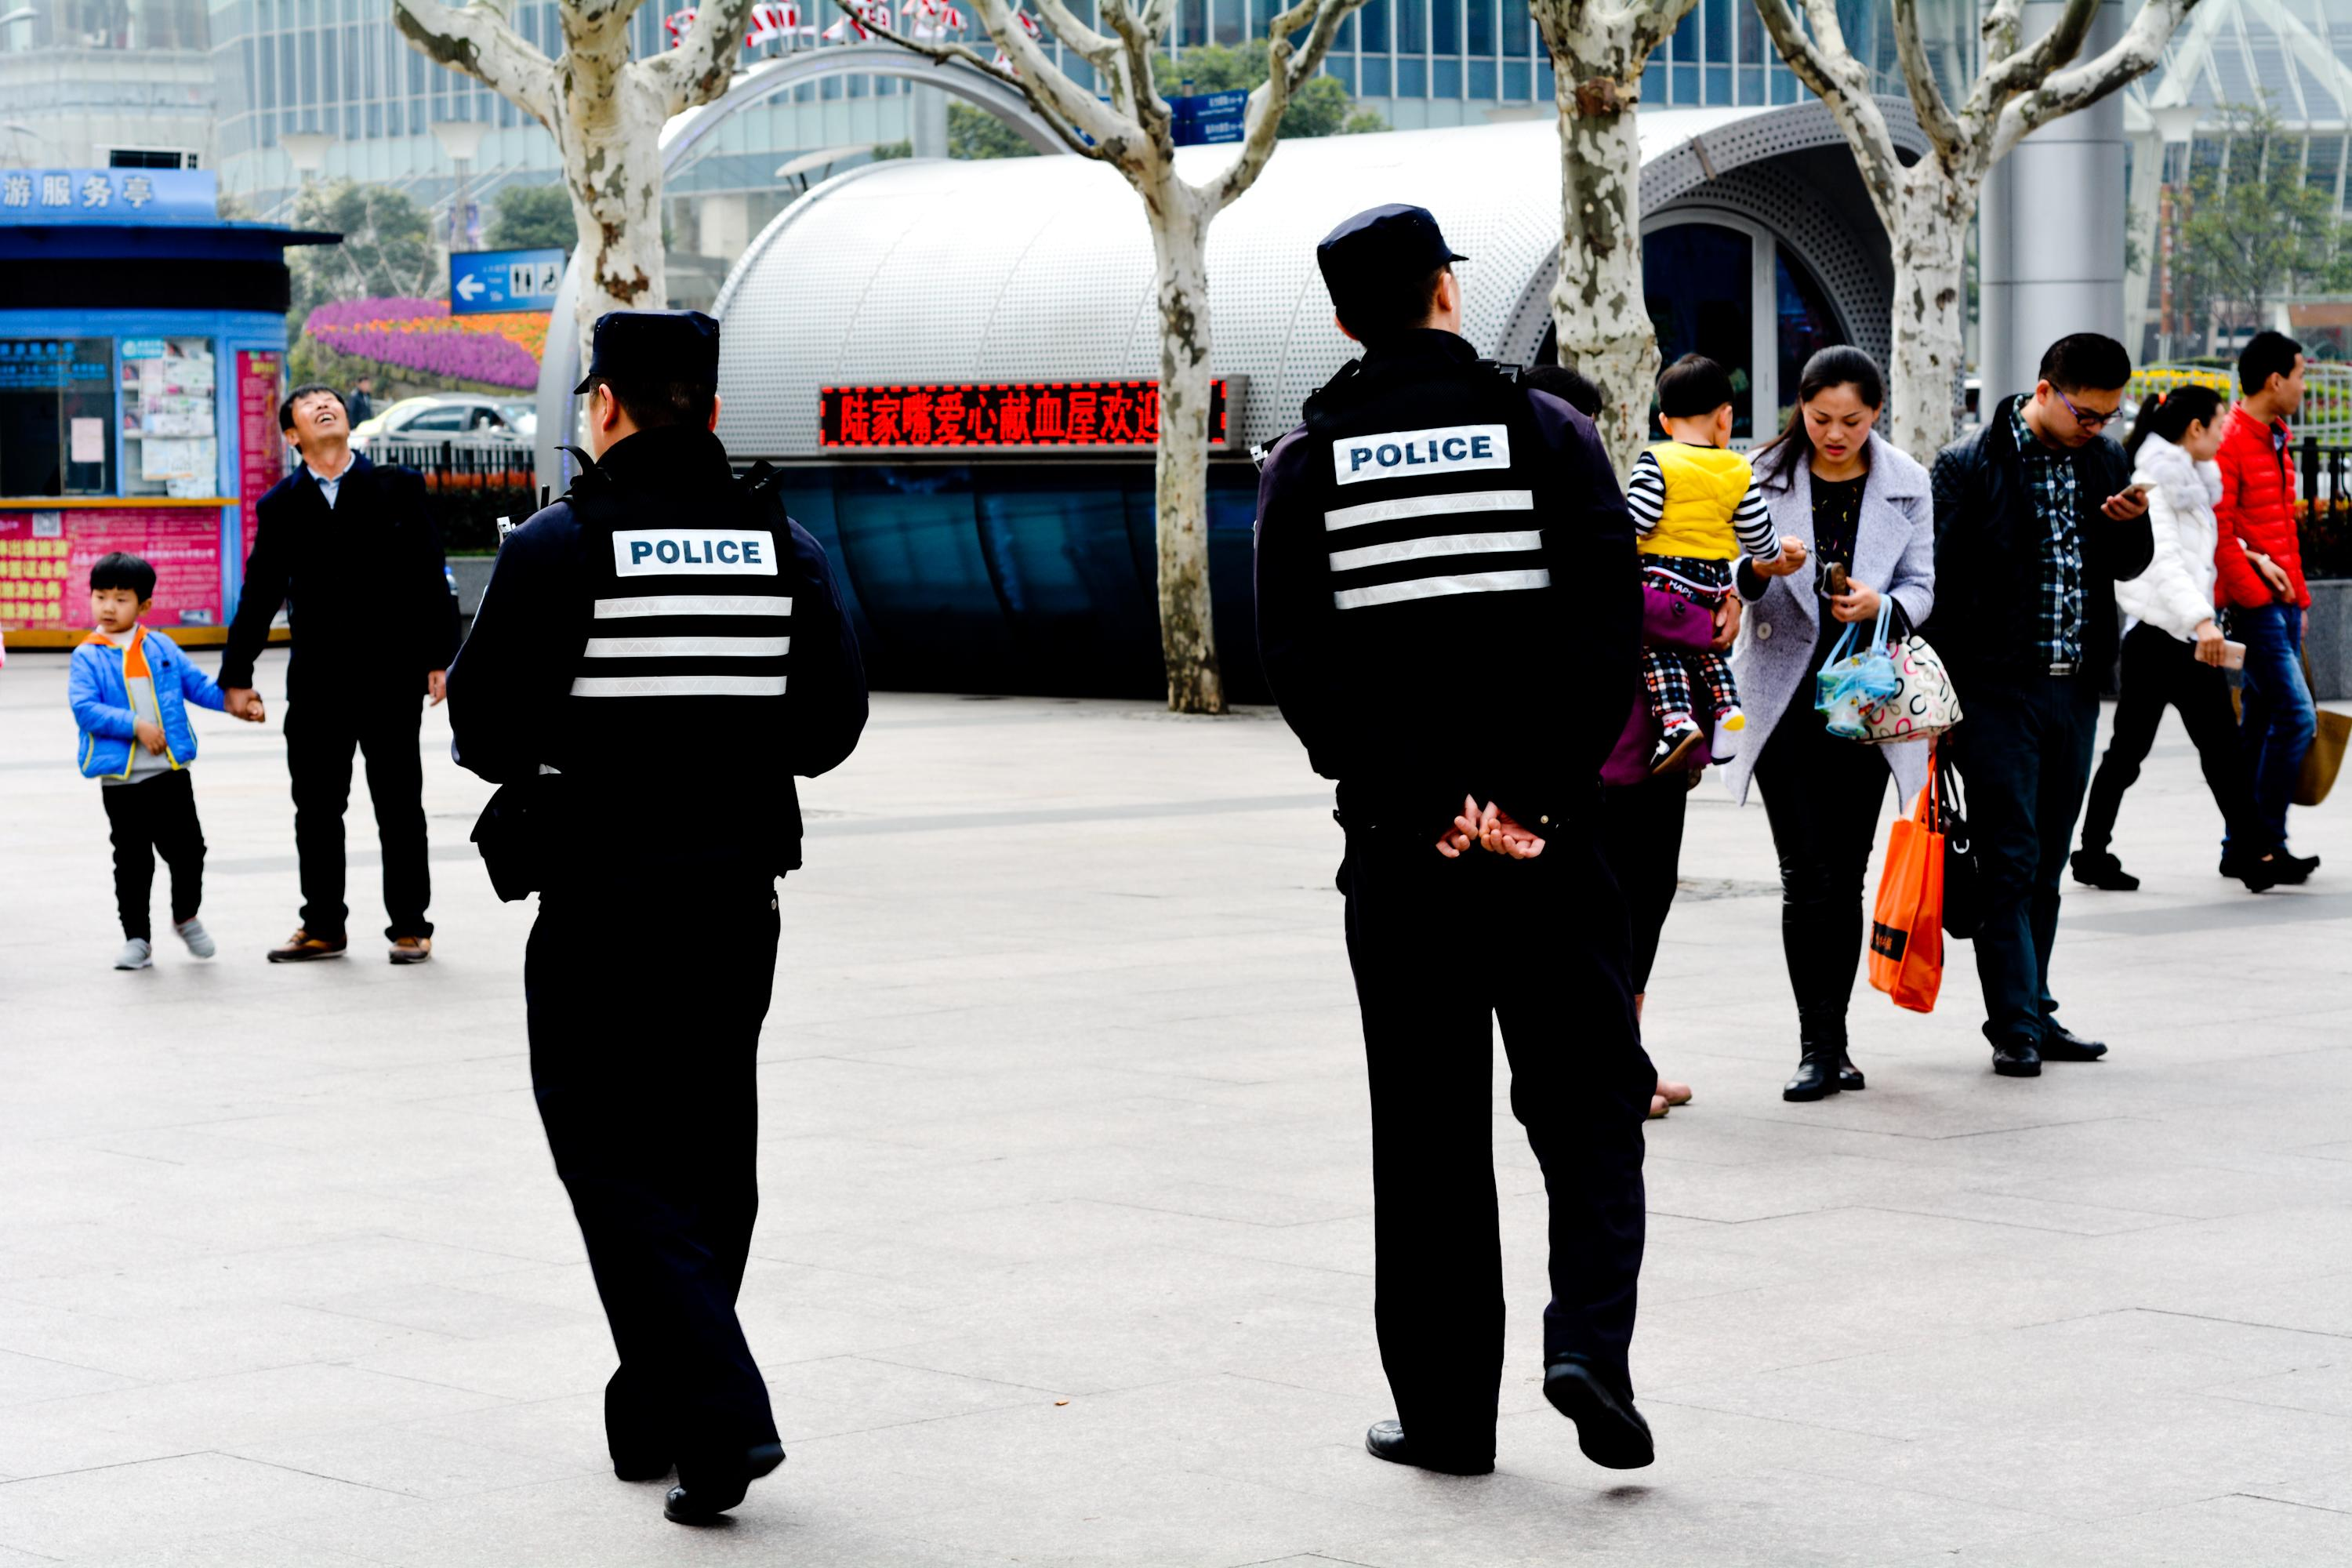 Two police officers in China patrol a city square